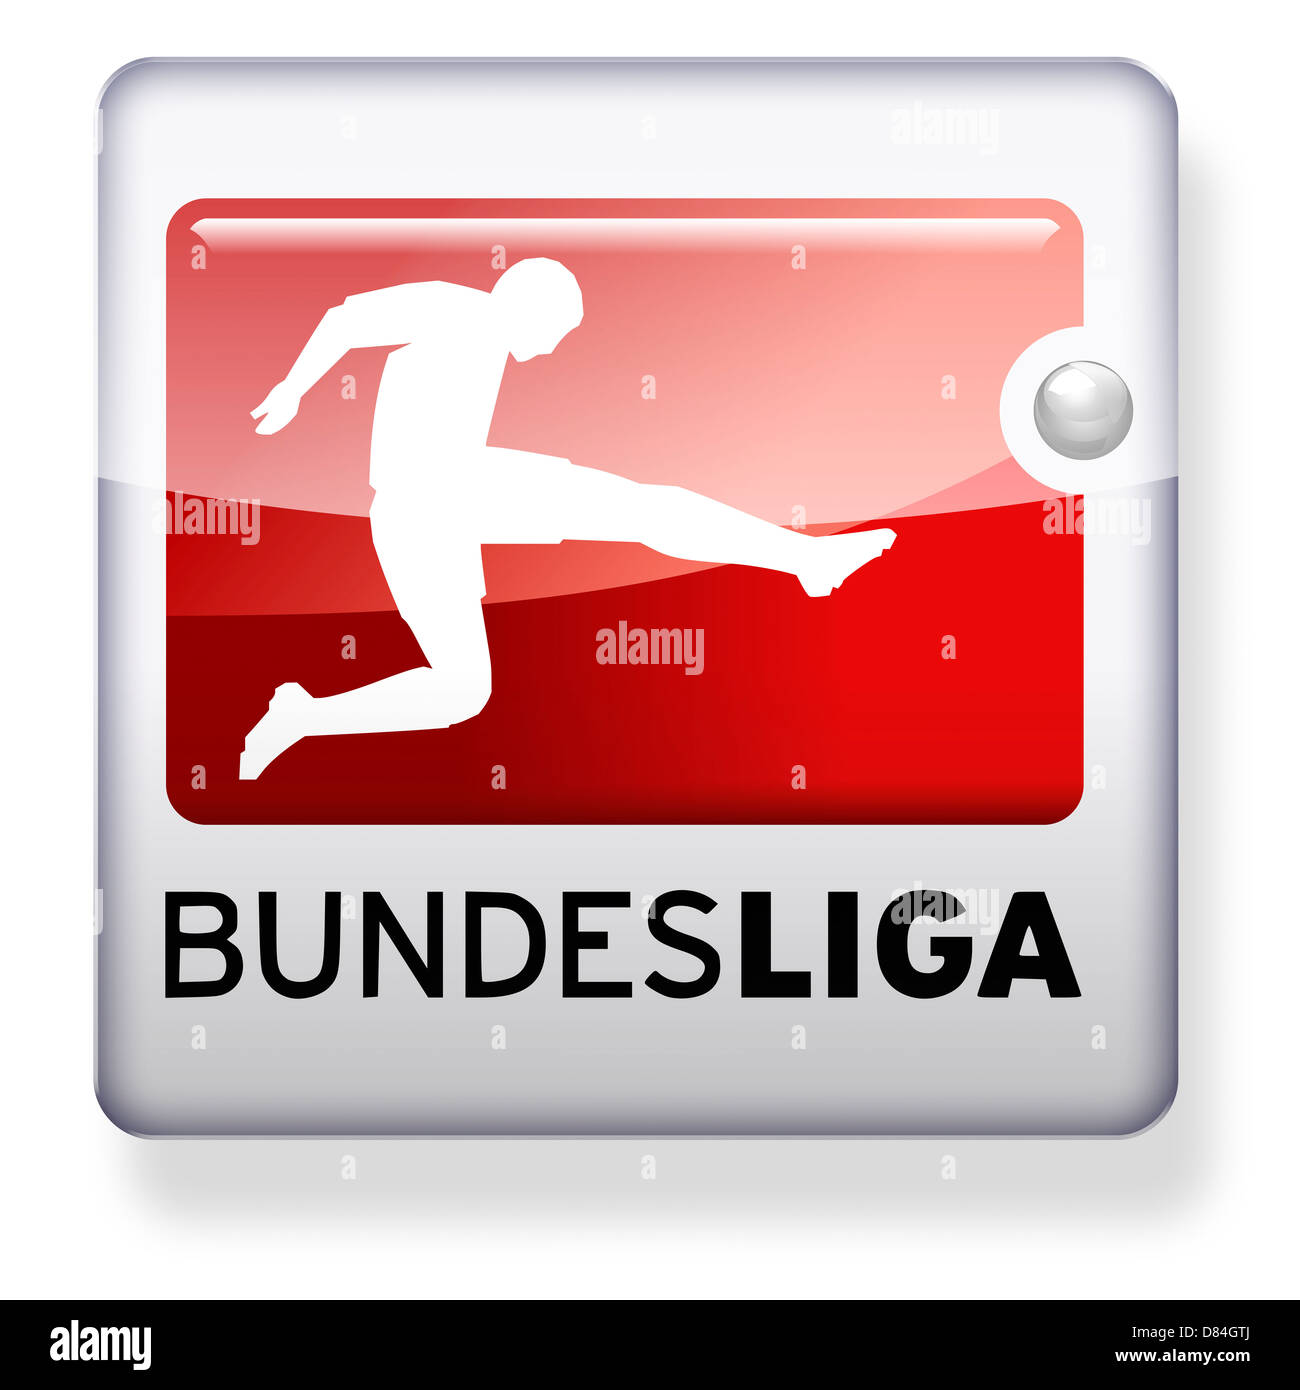 Bundesliga Logo As An App Icon. Clipping Path Included ...